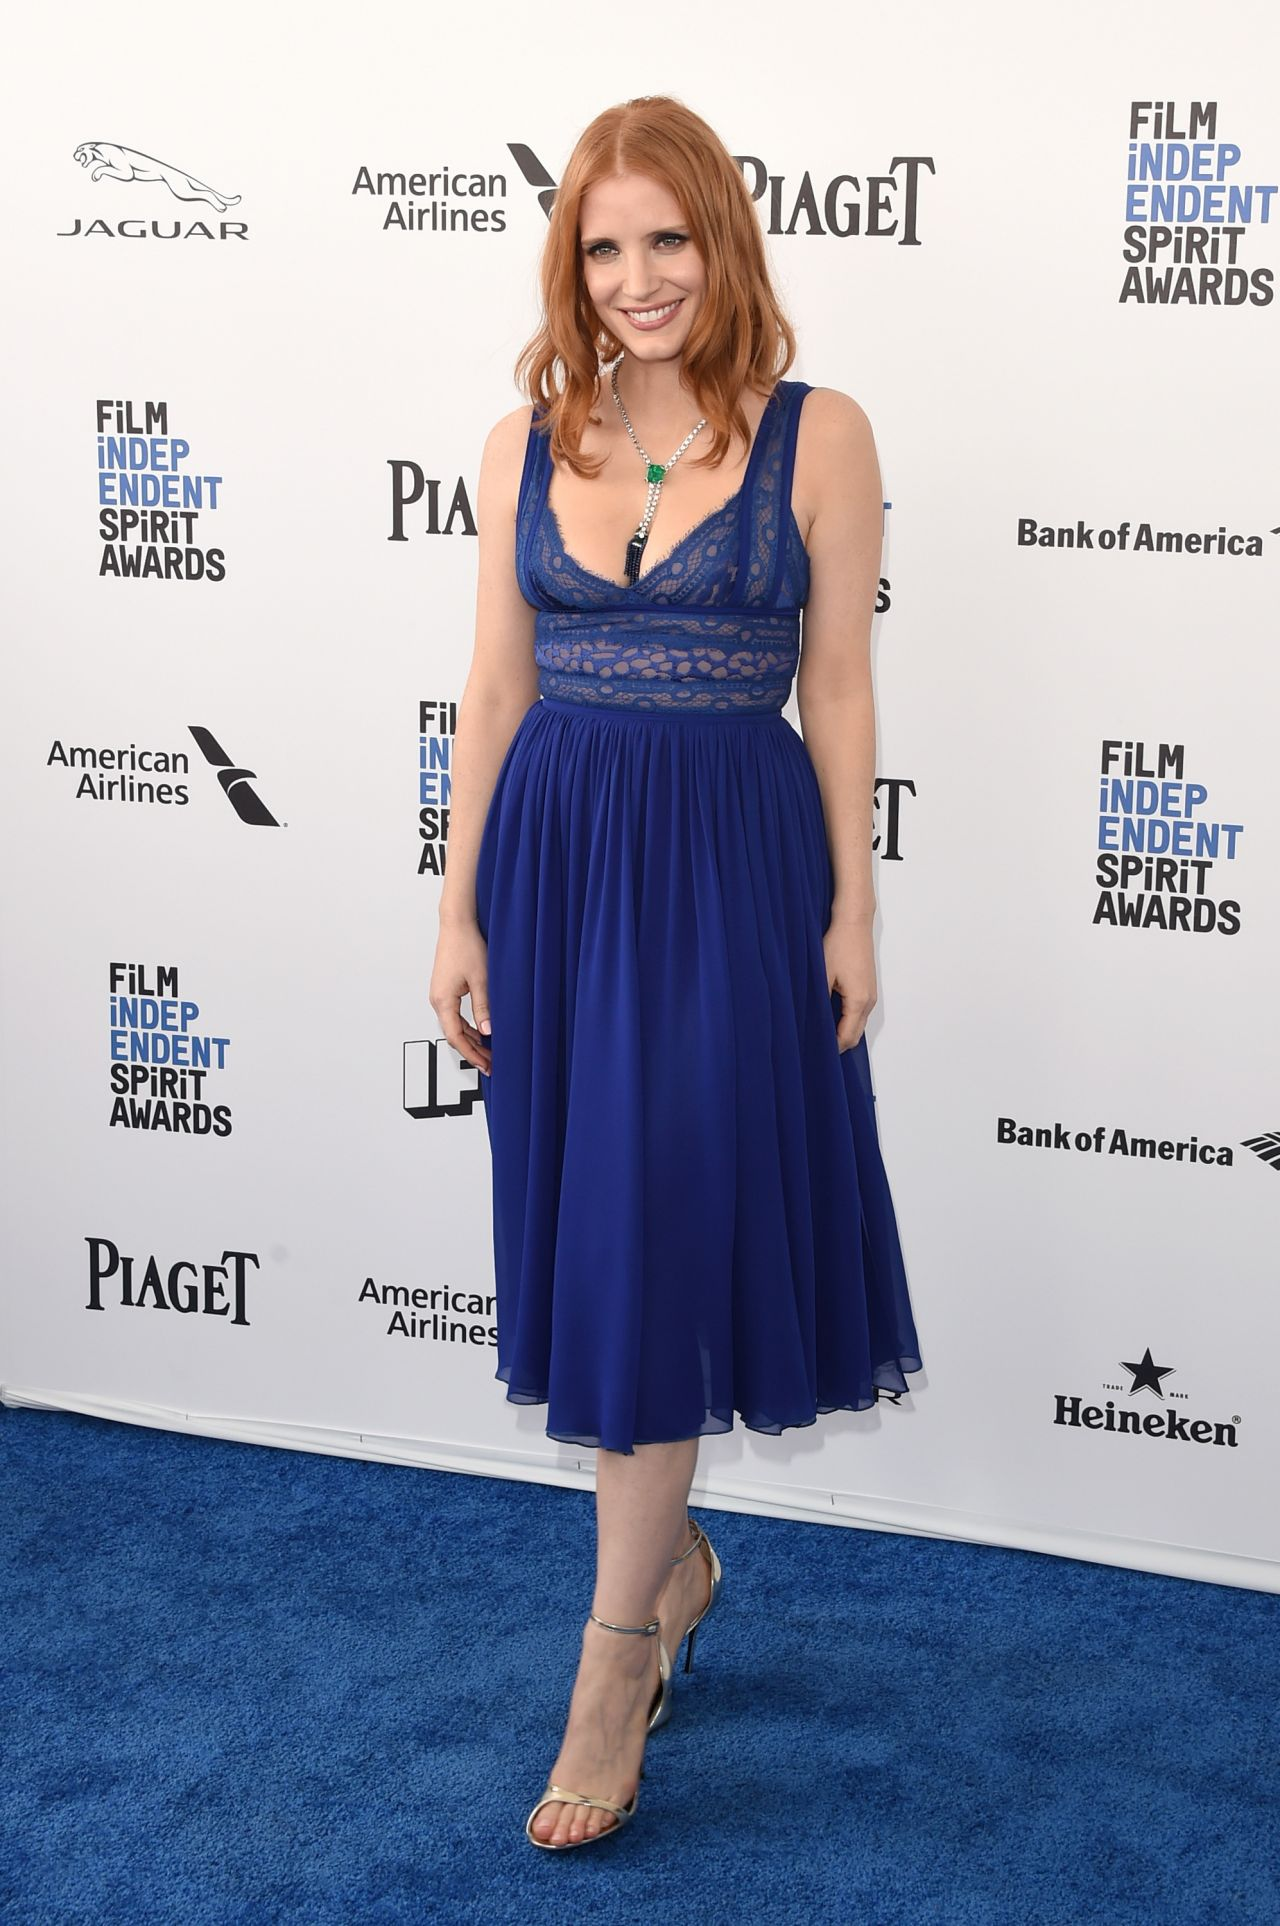 jessica-chastain-2016-film-independent-spirit-awards-in-santa-monica-ca-4